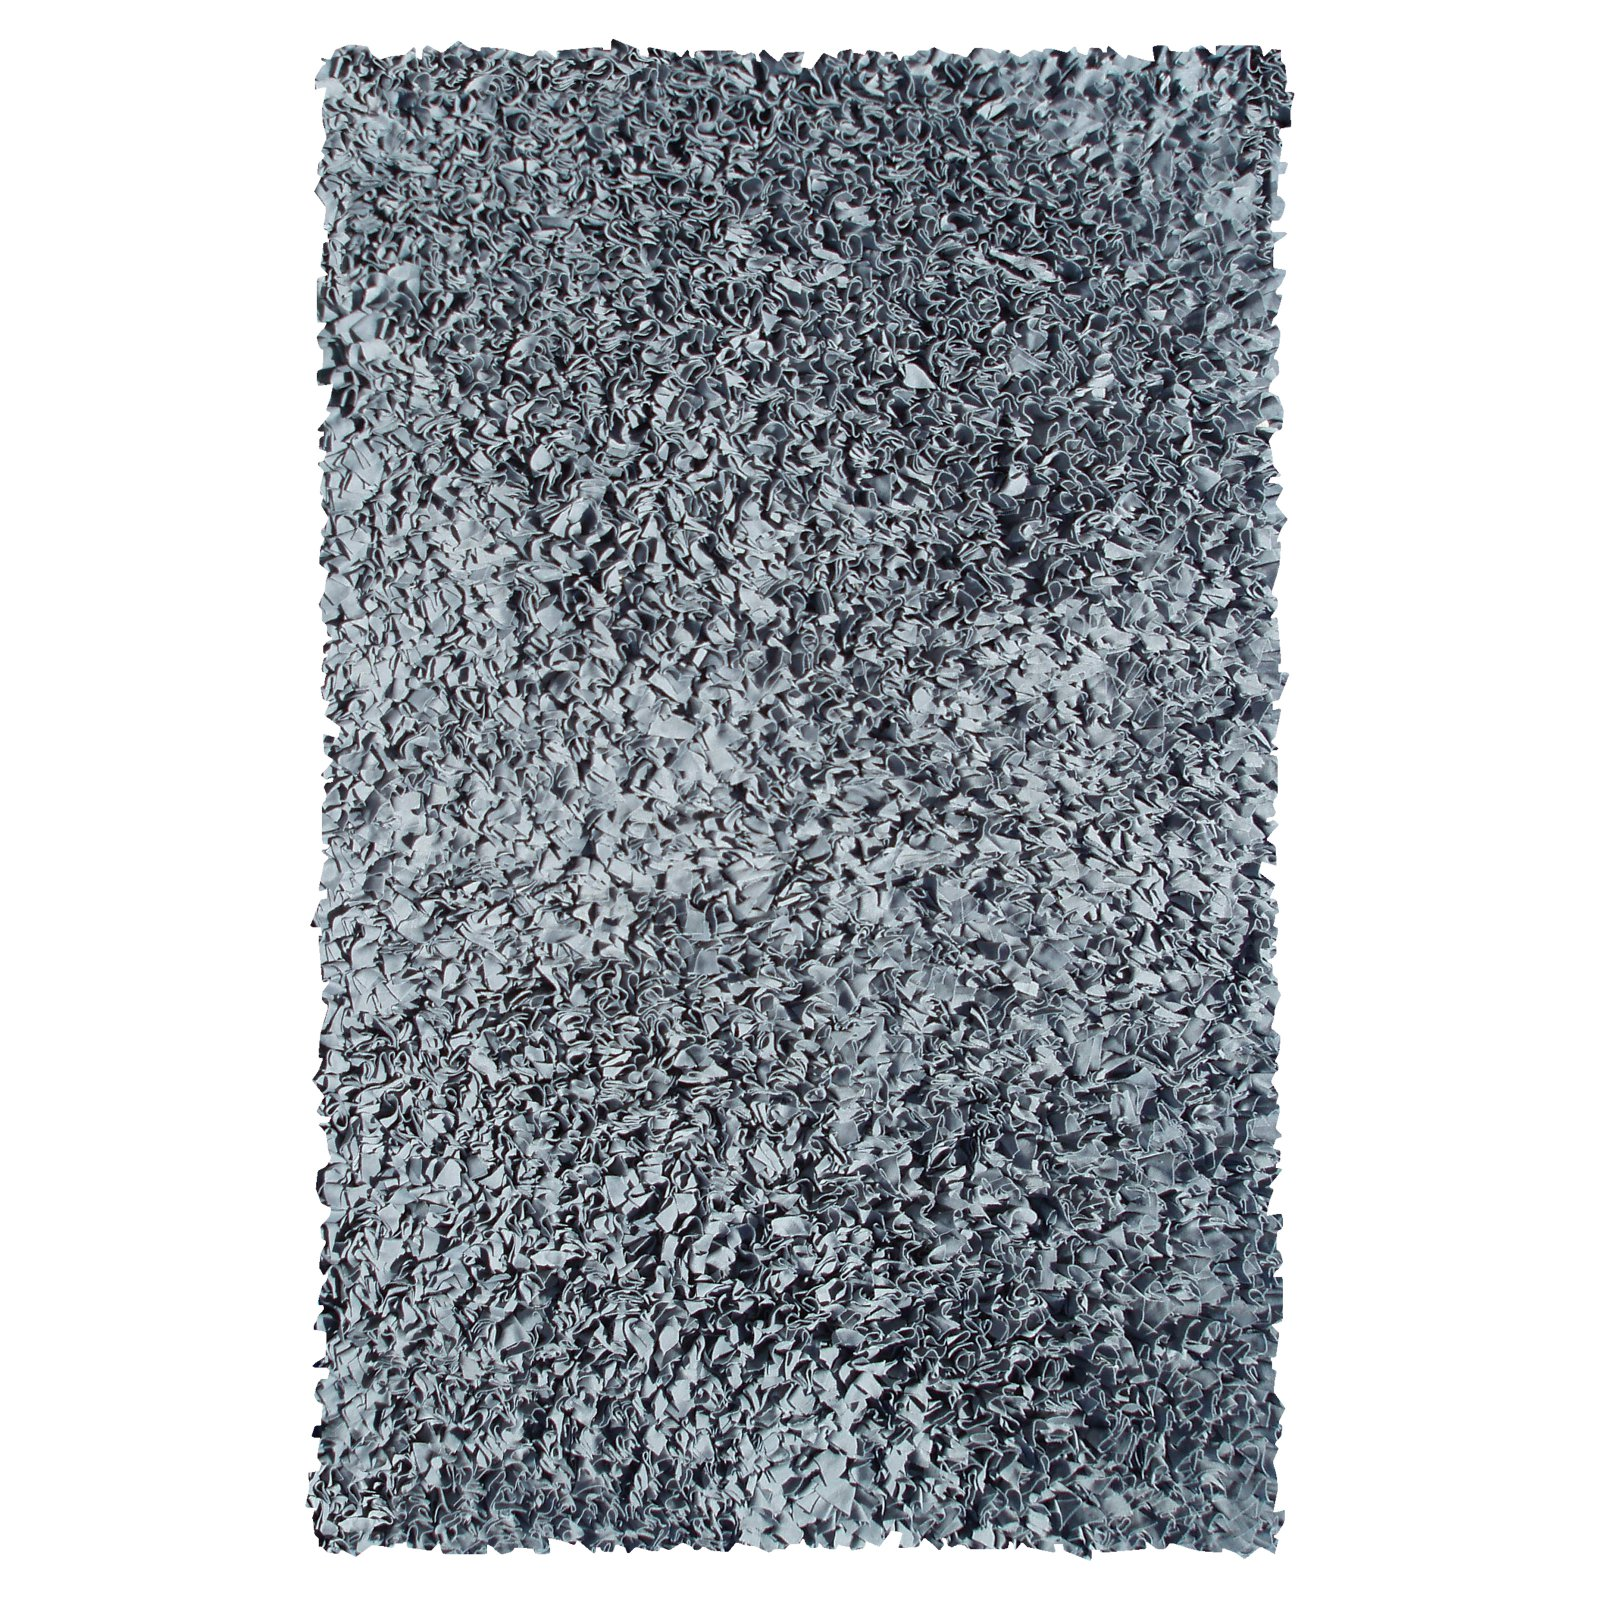 The Rug Market Shaggy Raggy Grey Size 2.8' x 4.8' Area Rug